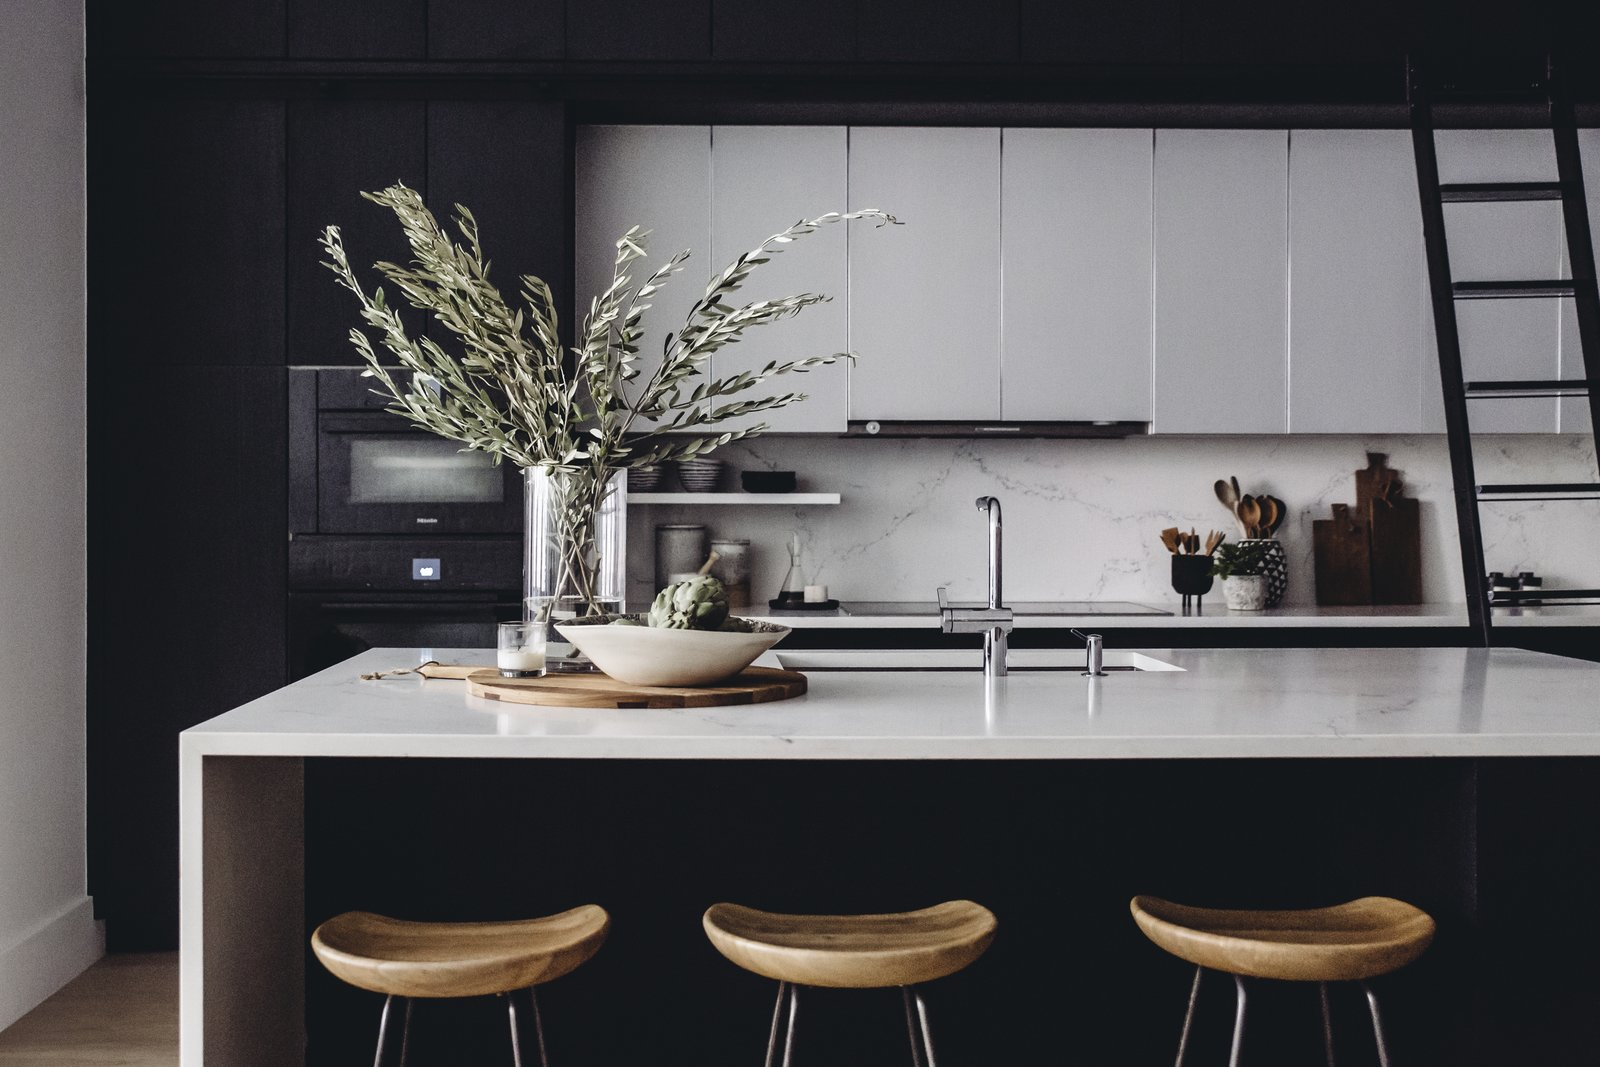 Contrast continues in the kitchen with a black-and-white palette warmed by natural wood elements. A Caesarstone countertop and backsplash with alabaster cabinets add a bright pop to the otherwise inky space—even the Miele and SubZero appliances are in dark tones. Arranged throughout are an Etu Home pizza board, Terrain ceramic fruit bowl, Waterworks cannisters, West Elm mortar and pestle, and a House Dr. utensil pot. (Chloe Leroux)